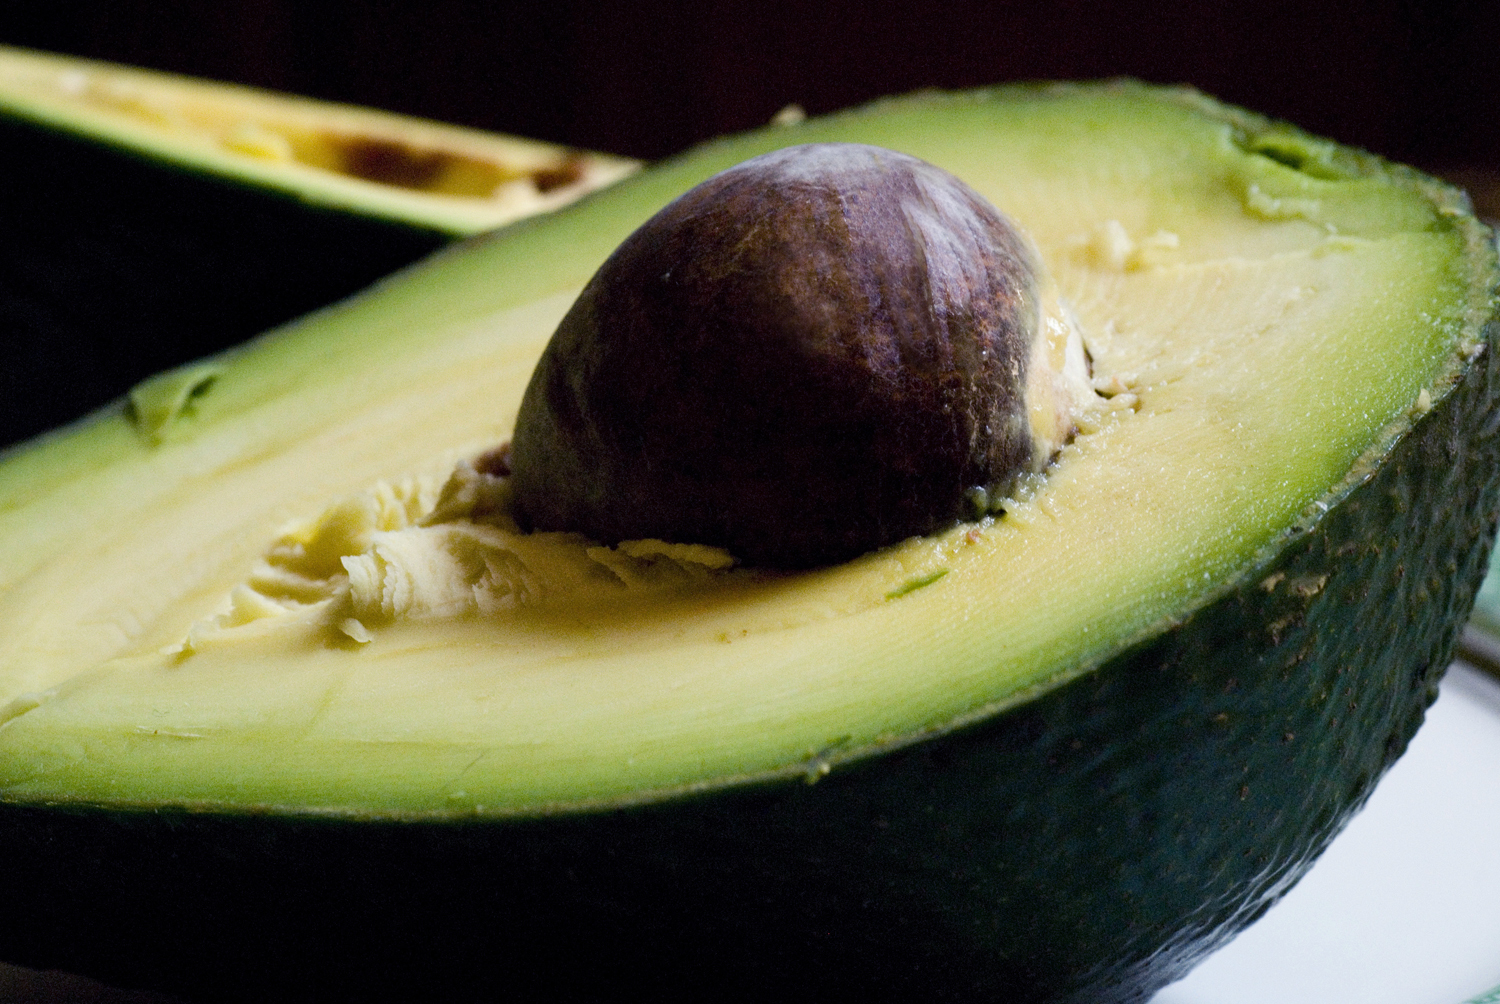 Avocados are a favorite among foods imported from Mexico.